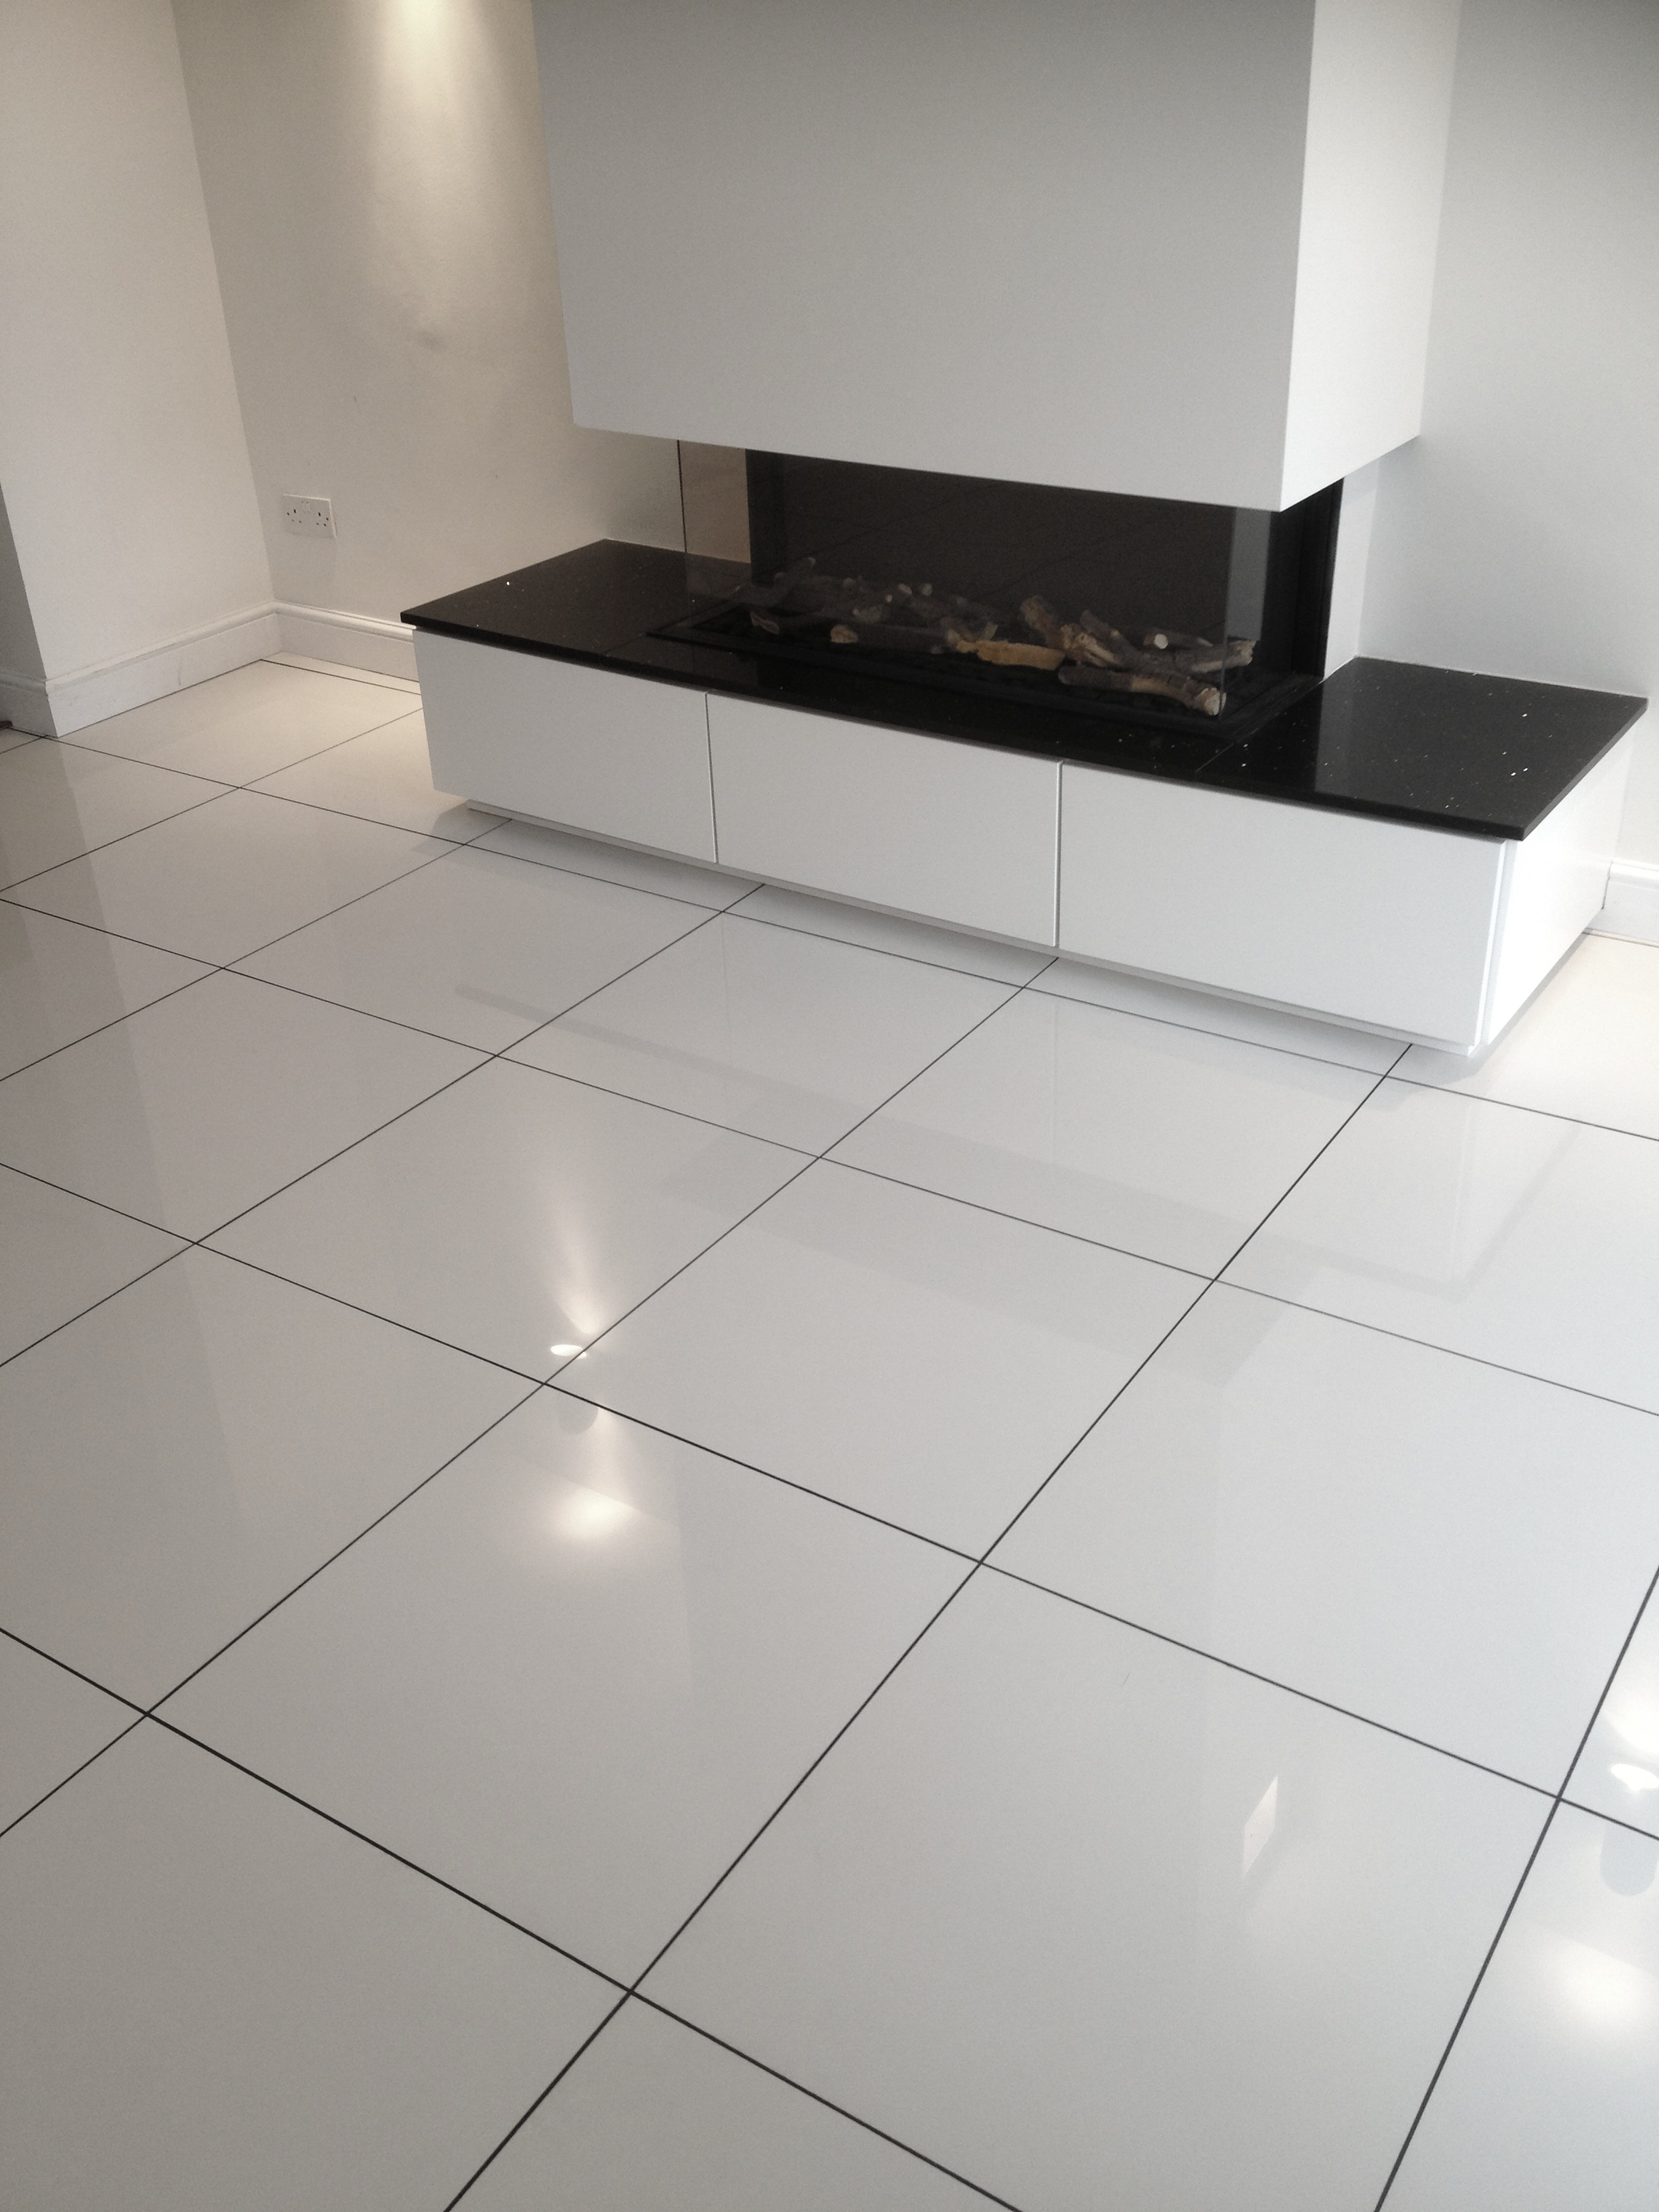 White Tile Flooring. White Tile Flooring A - Churl.co